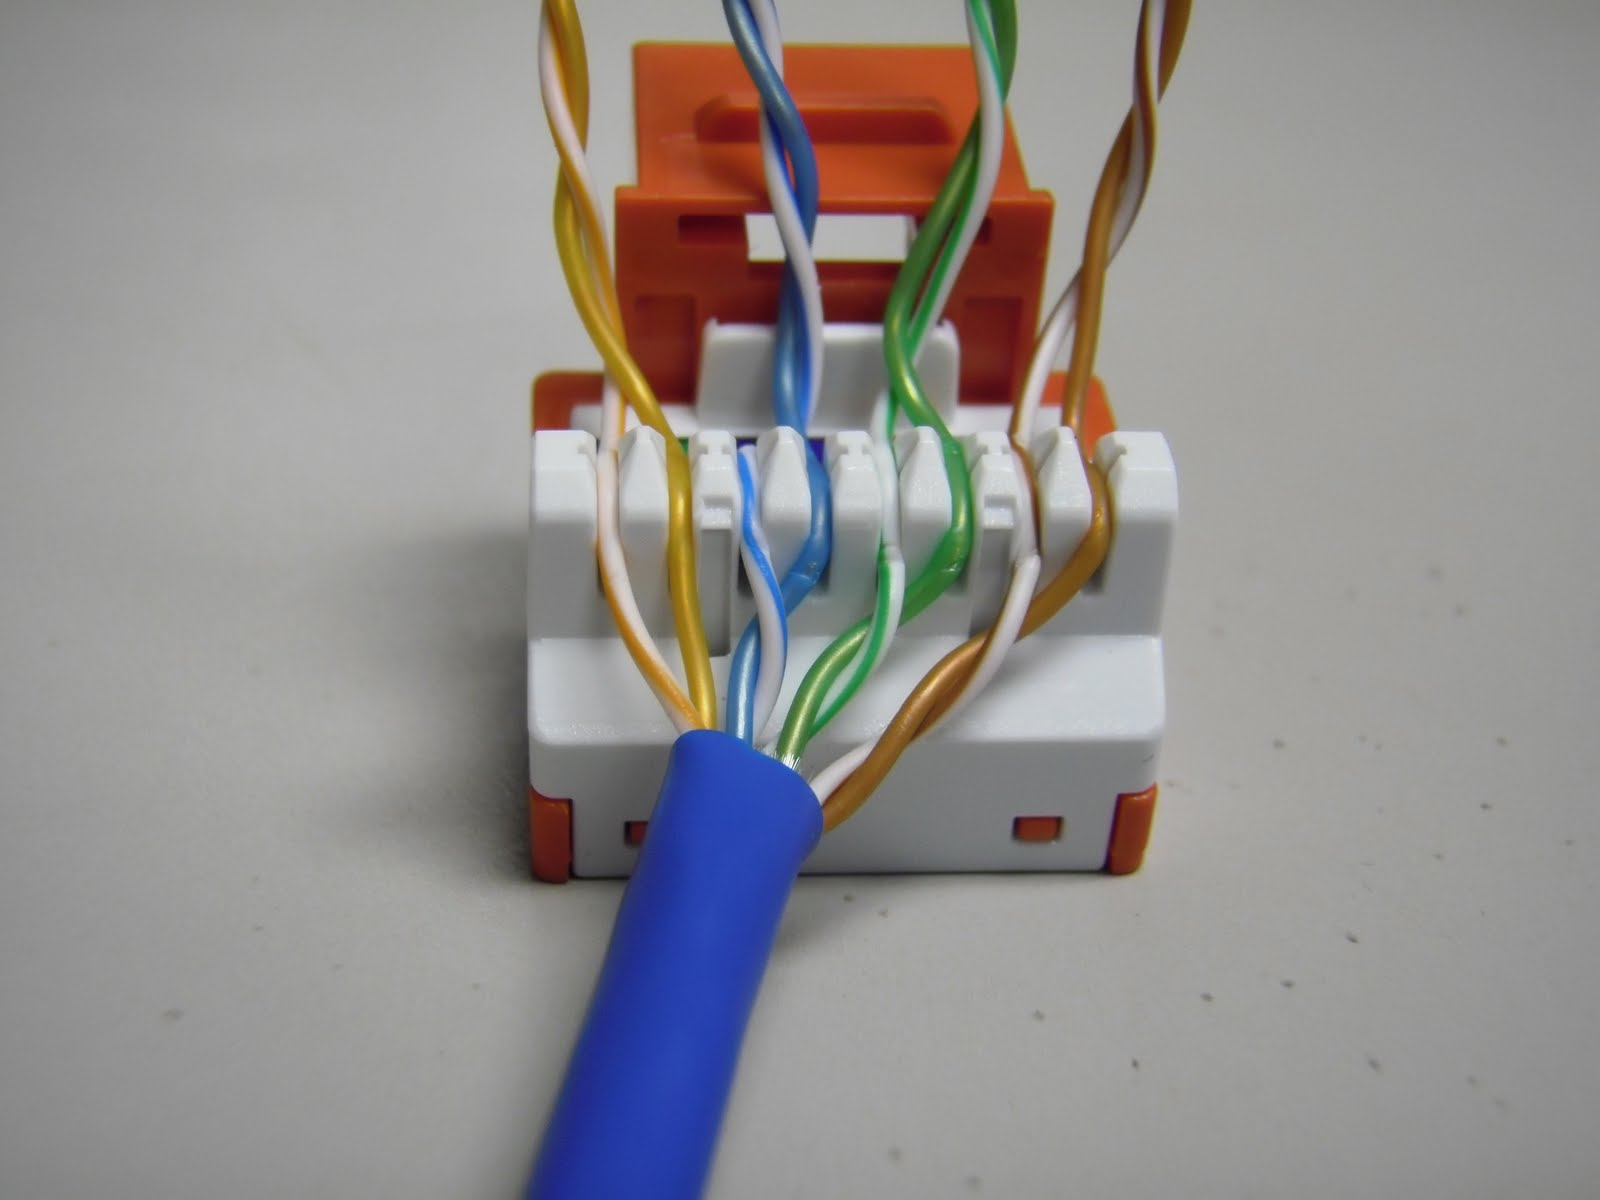 Cat5e Wall Jack Wiring Diagram Lace Sensor Humbucker The Trench How To Punch Down Cat6 Keystone Jacks